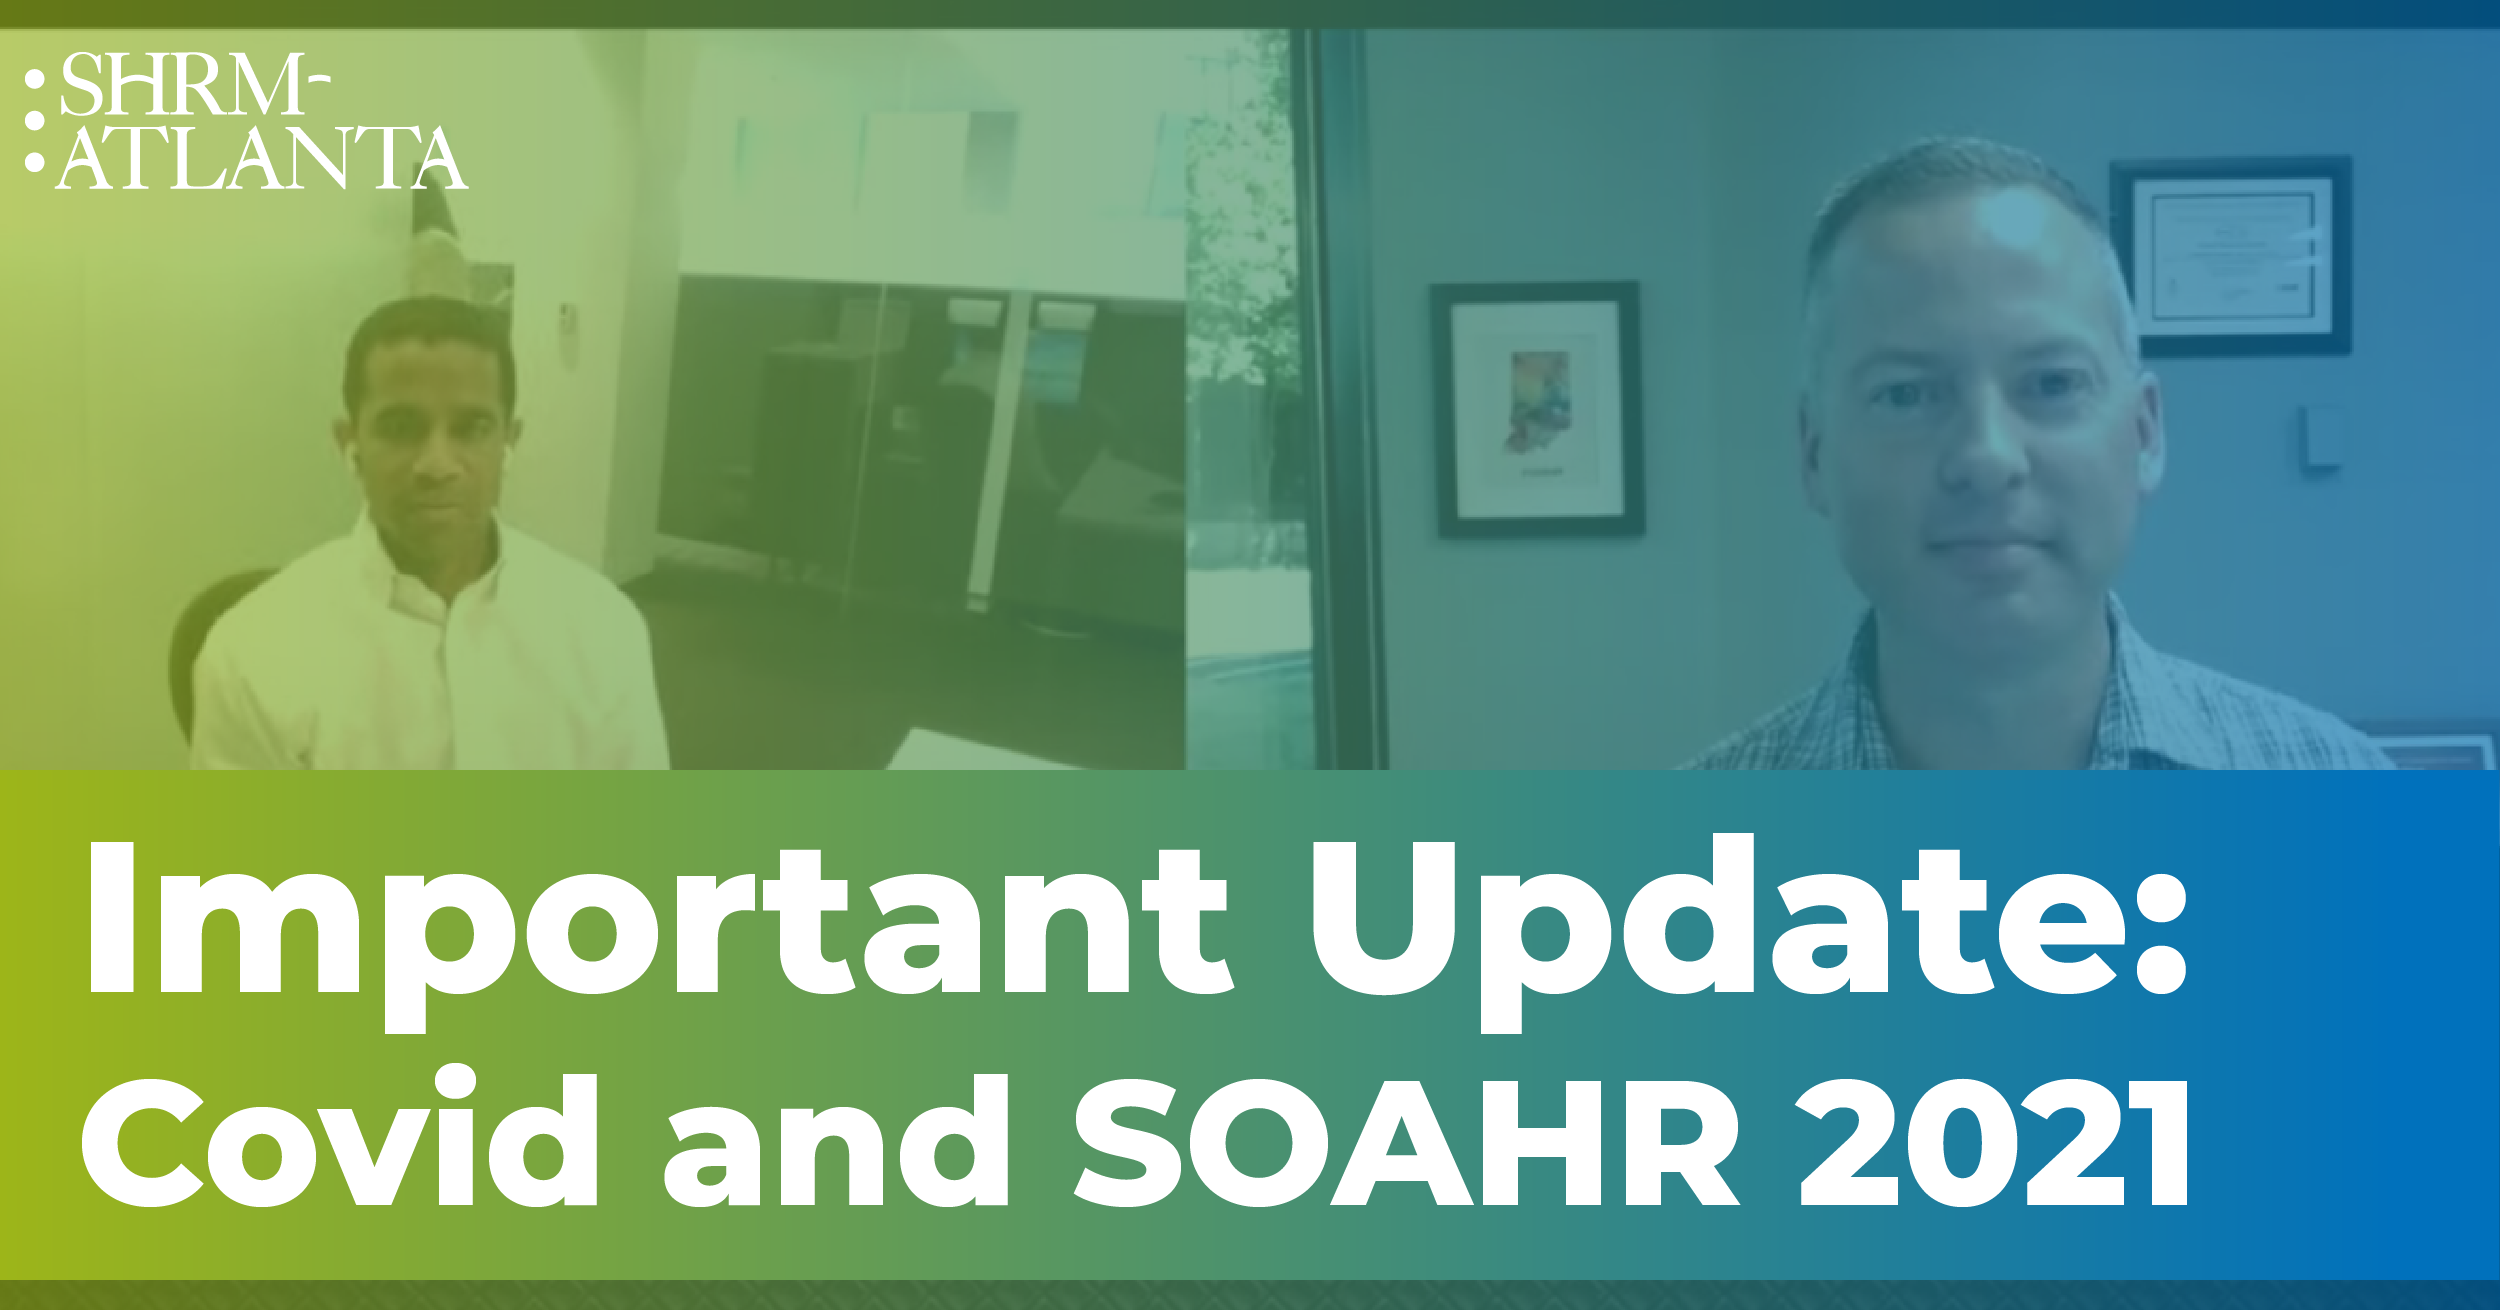 Important Update: COVID and SOAHR 2021